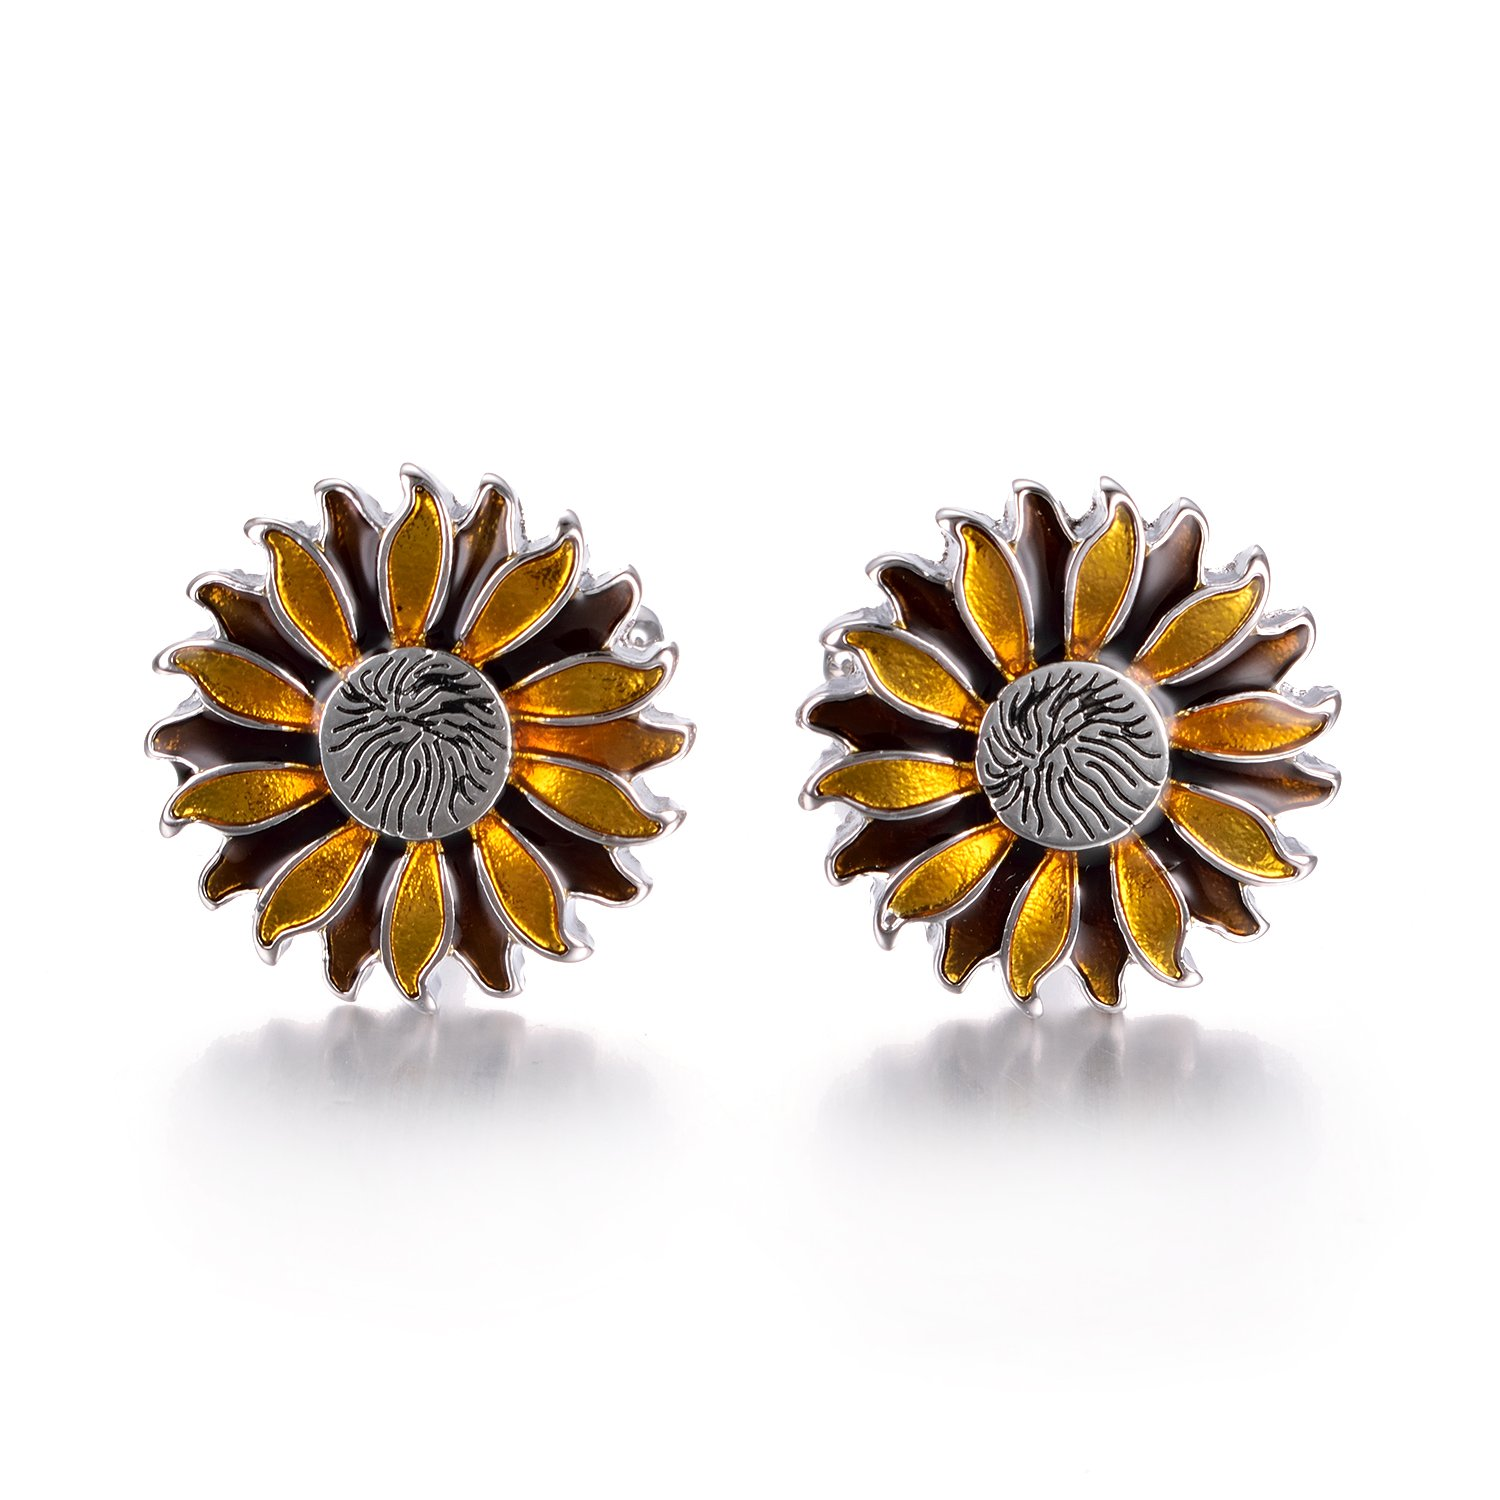 Yoursfs Sunflower Enamel Cufflinks Dark & Light Yellow Bullet Cufflinks Positive Fashion Cufflinks by Yoursfs (Image #2)